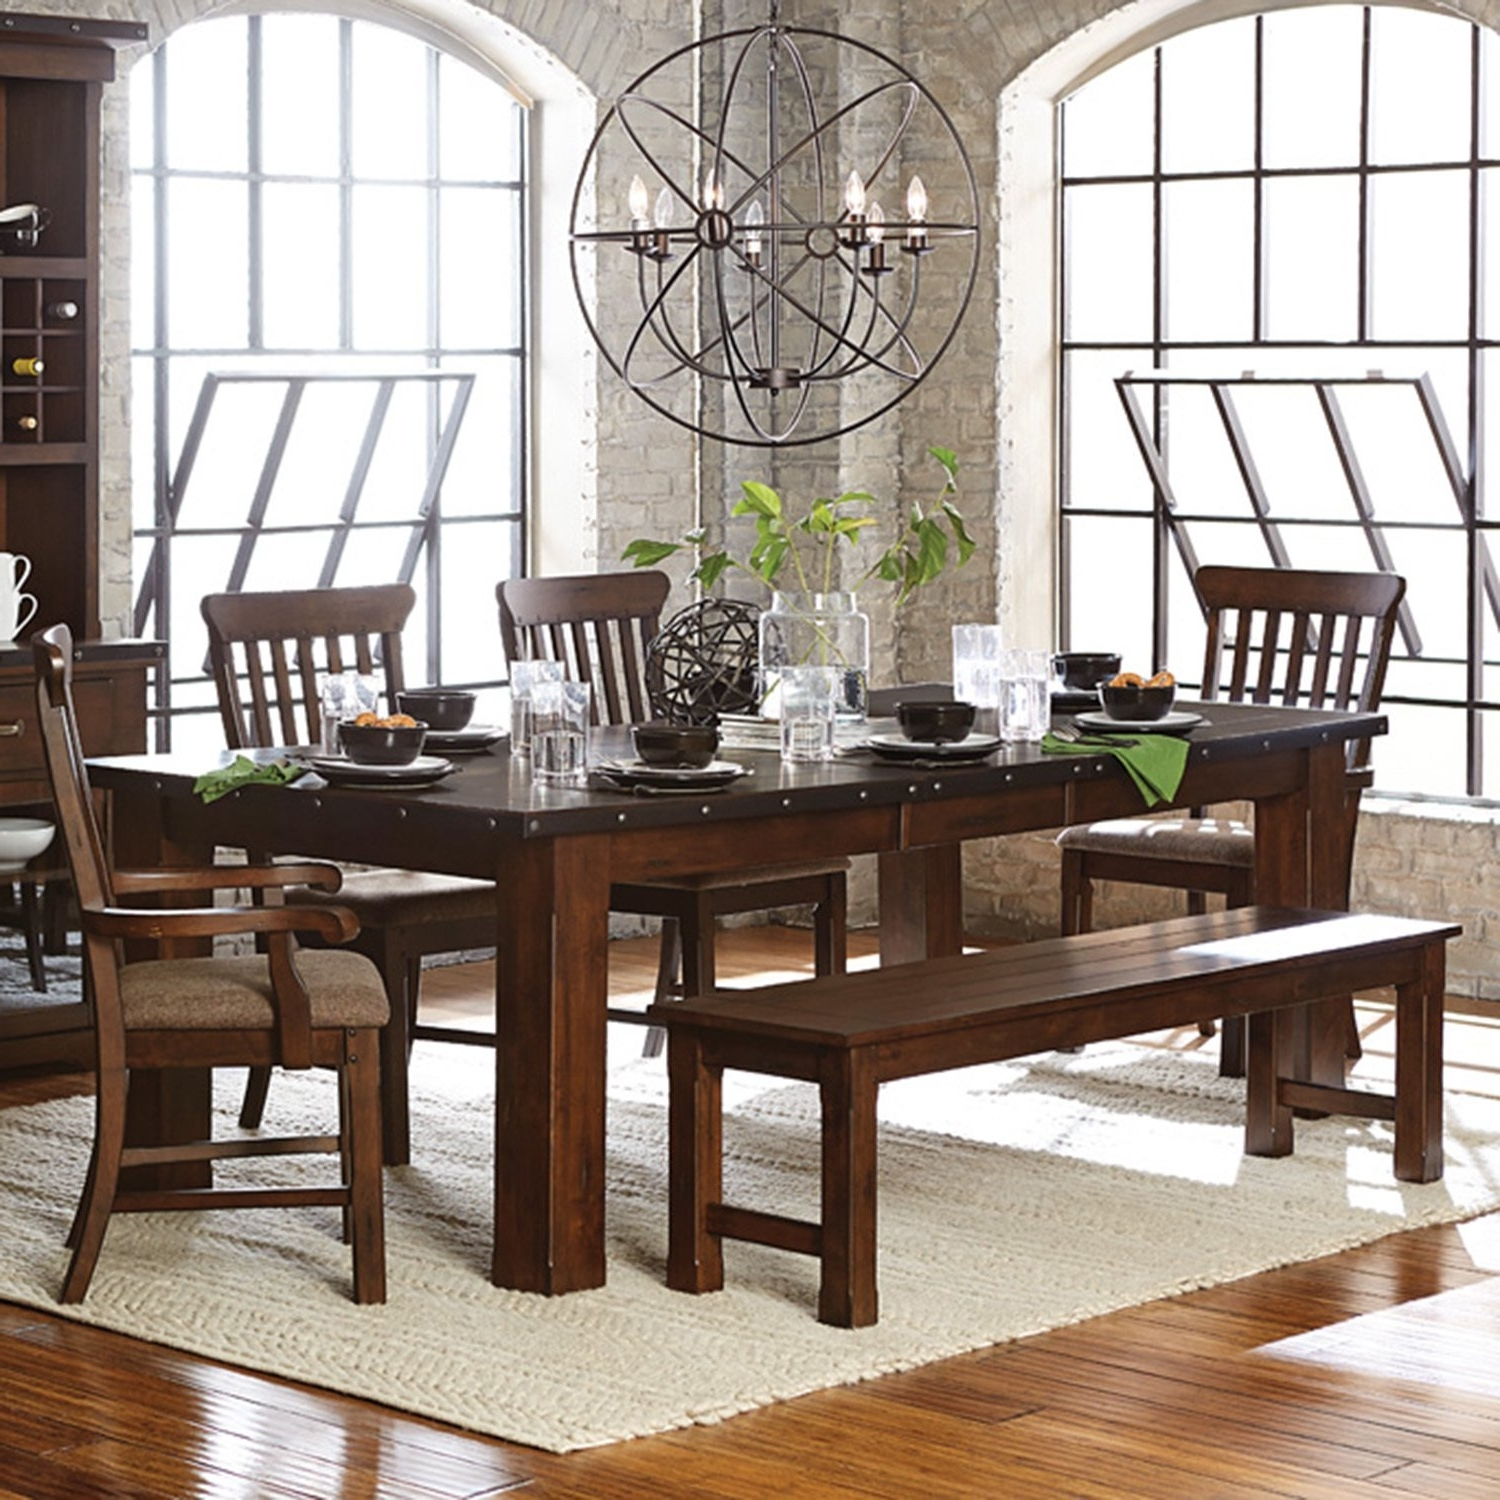 Norwood 9 Piece Rectangle Extension Dining Sets Within Preferred Shop Norwood Antique Oak Finish Extending Table Dining Set – Free (View 6 of 25)